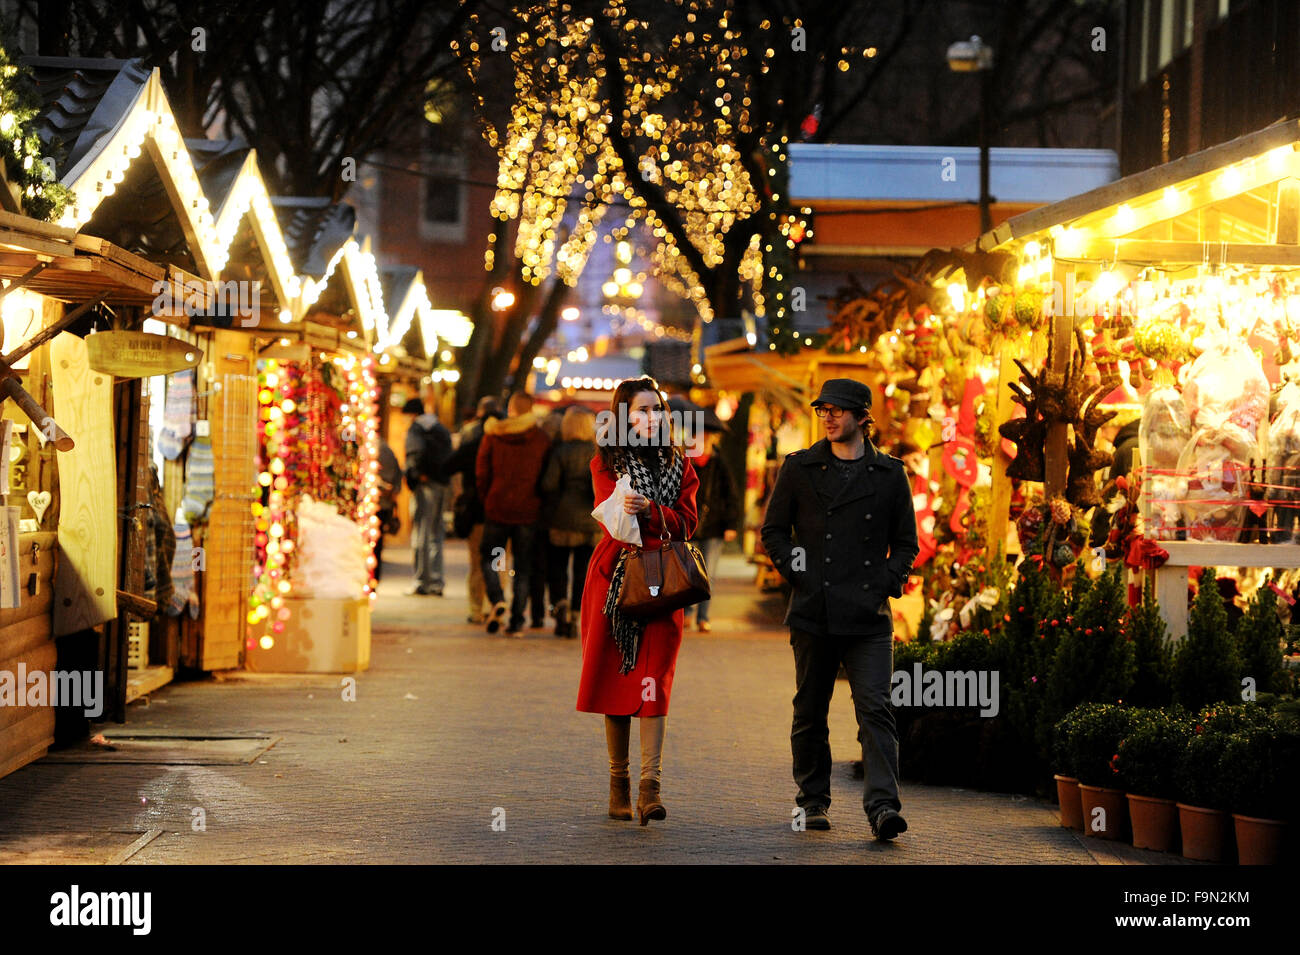 Manchester Christmas Market, Albert Square, Manchester. Picture by Paul Heyes, Monday December 14, 2015 Stock Photo